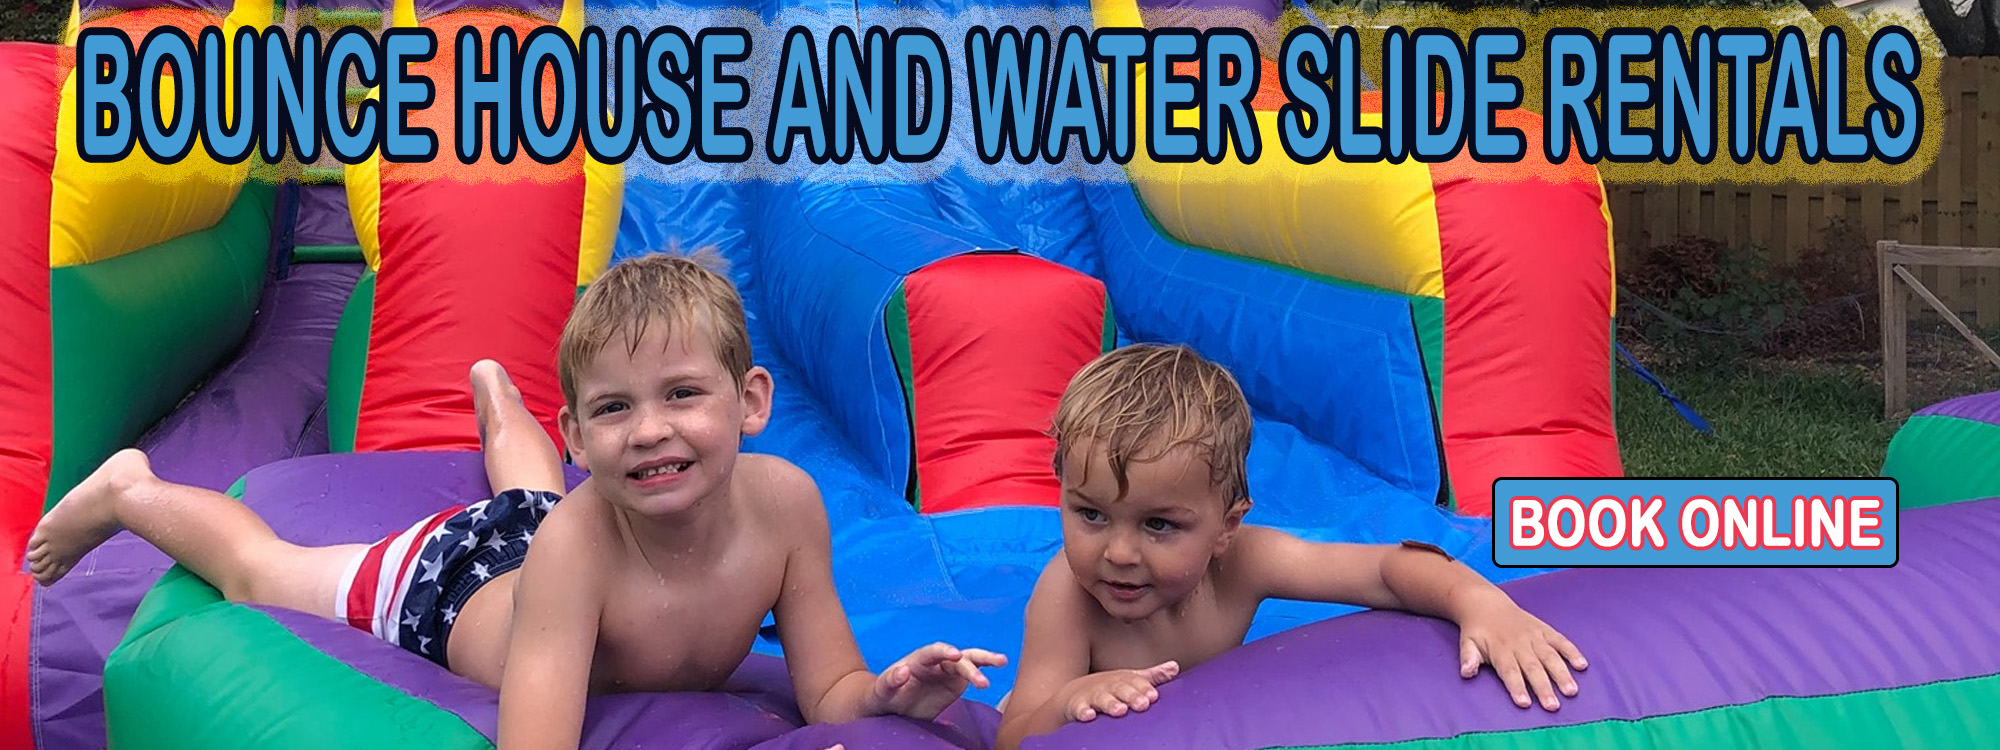 Bounce House Water Slide Rentals in Sarasota and Bradenton from LEts Jump Events